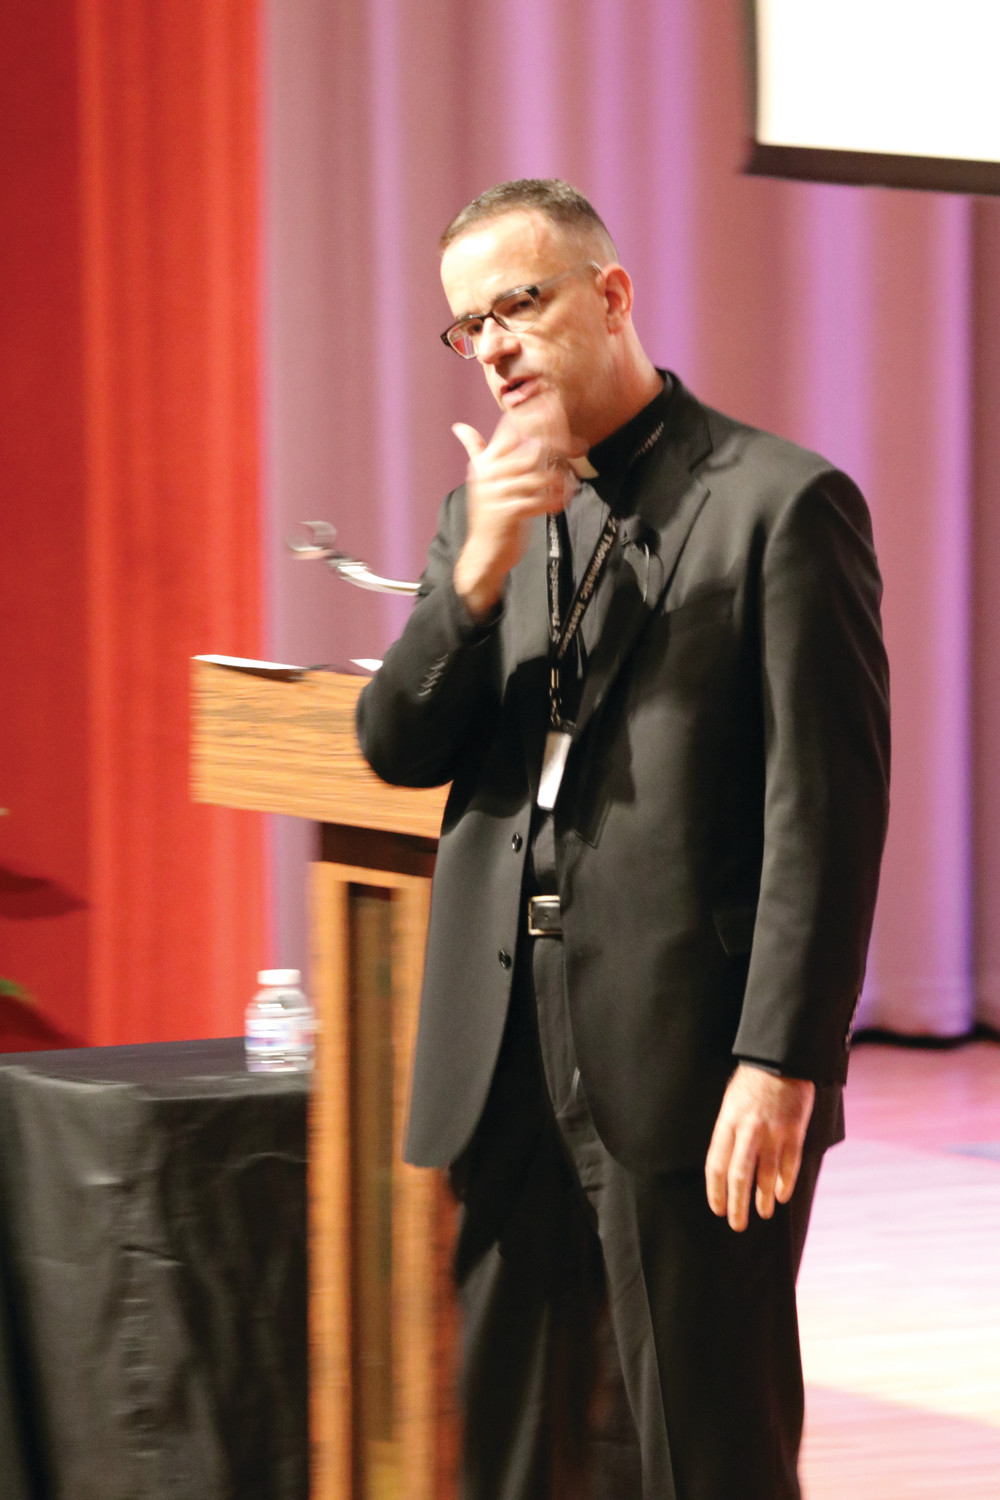 "Msgr. Brian Bransfield, a priest of the Archdiocese of Philadelphia, who was elected in 2015 to serve a five-year term as general secretary of the U.S. Conference of Catholic Bishops, presents a talk on ""Accompaniment for Those Who Experience Addiction,"" on Wednesday, July 11 on the stage at McVinney Auditorium."